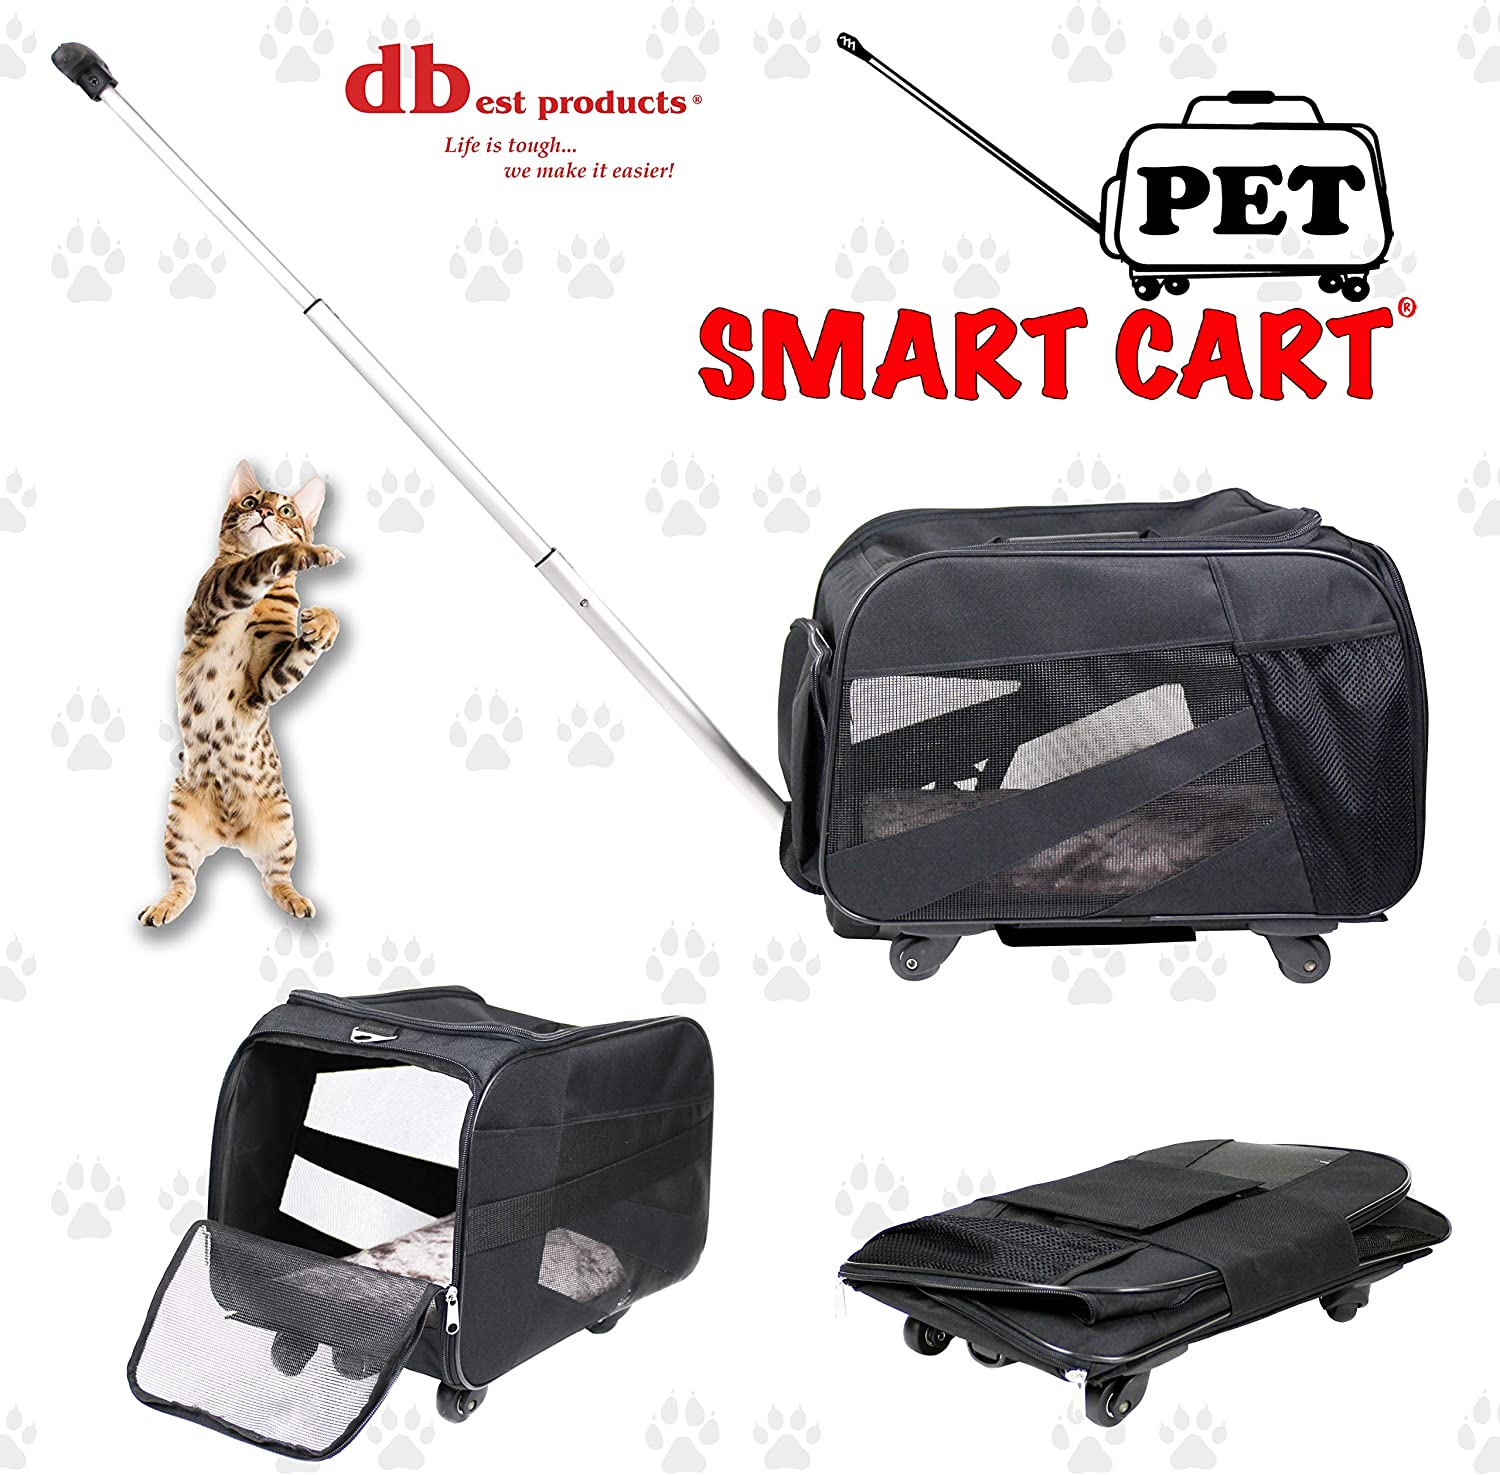 Pet Smart Cart, Large, Black, Rolling Carrier with wheels soft sided collapsible Folding Travel Bag, Dog Cat Airline Approved Tote Luggage backpack